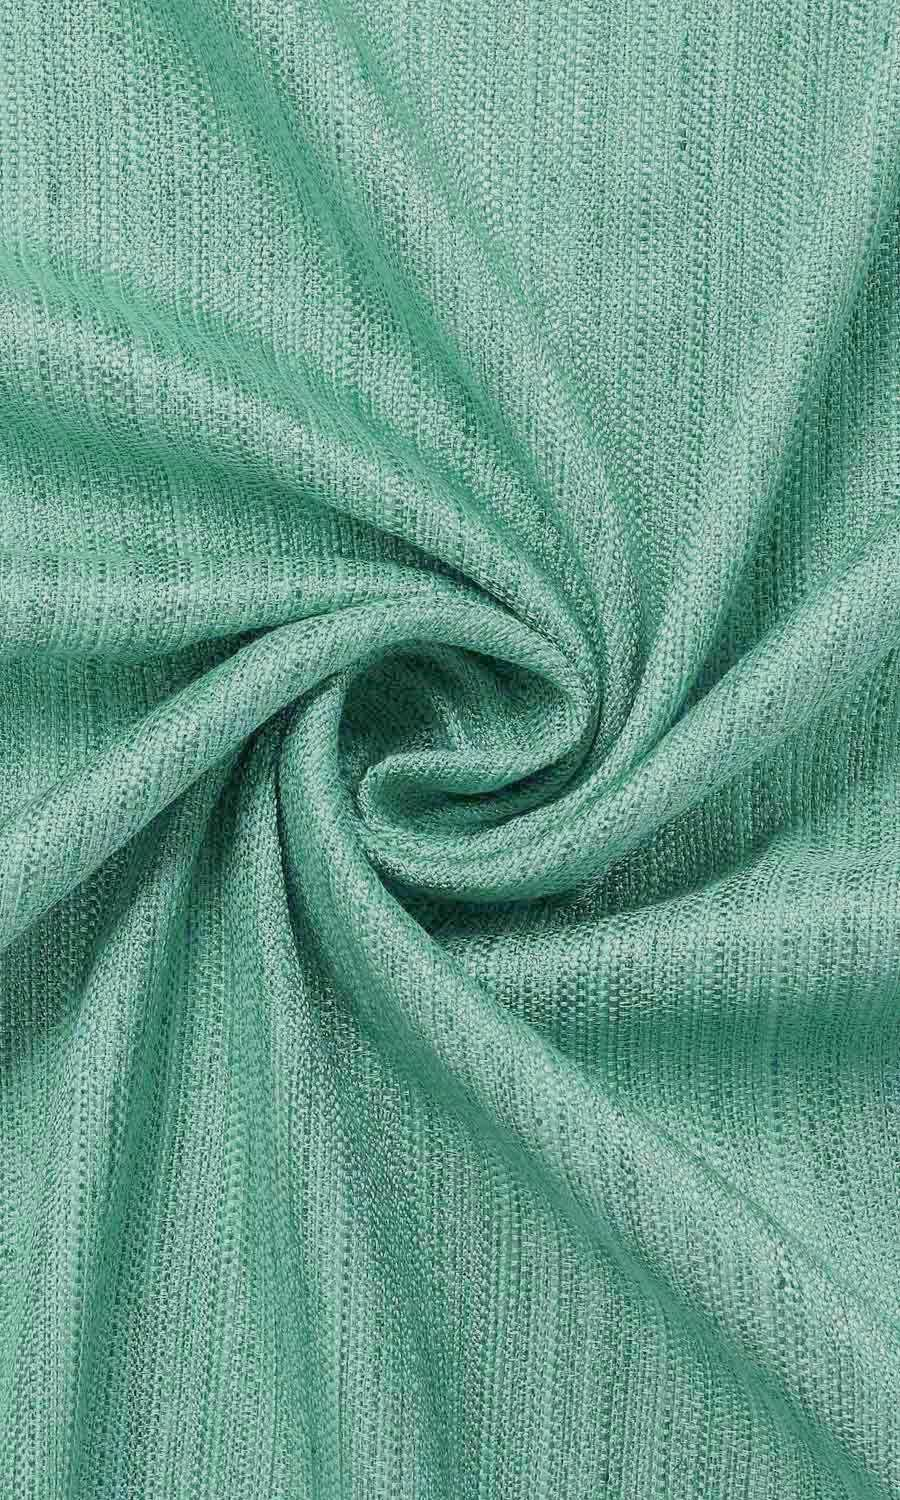 Sea Lily Fabric Swatch Mint Green Fabric Swatches Drapes